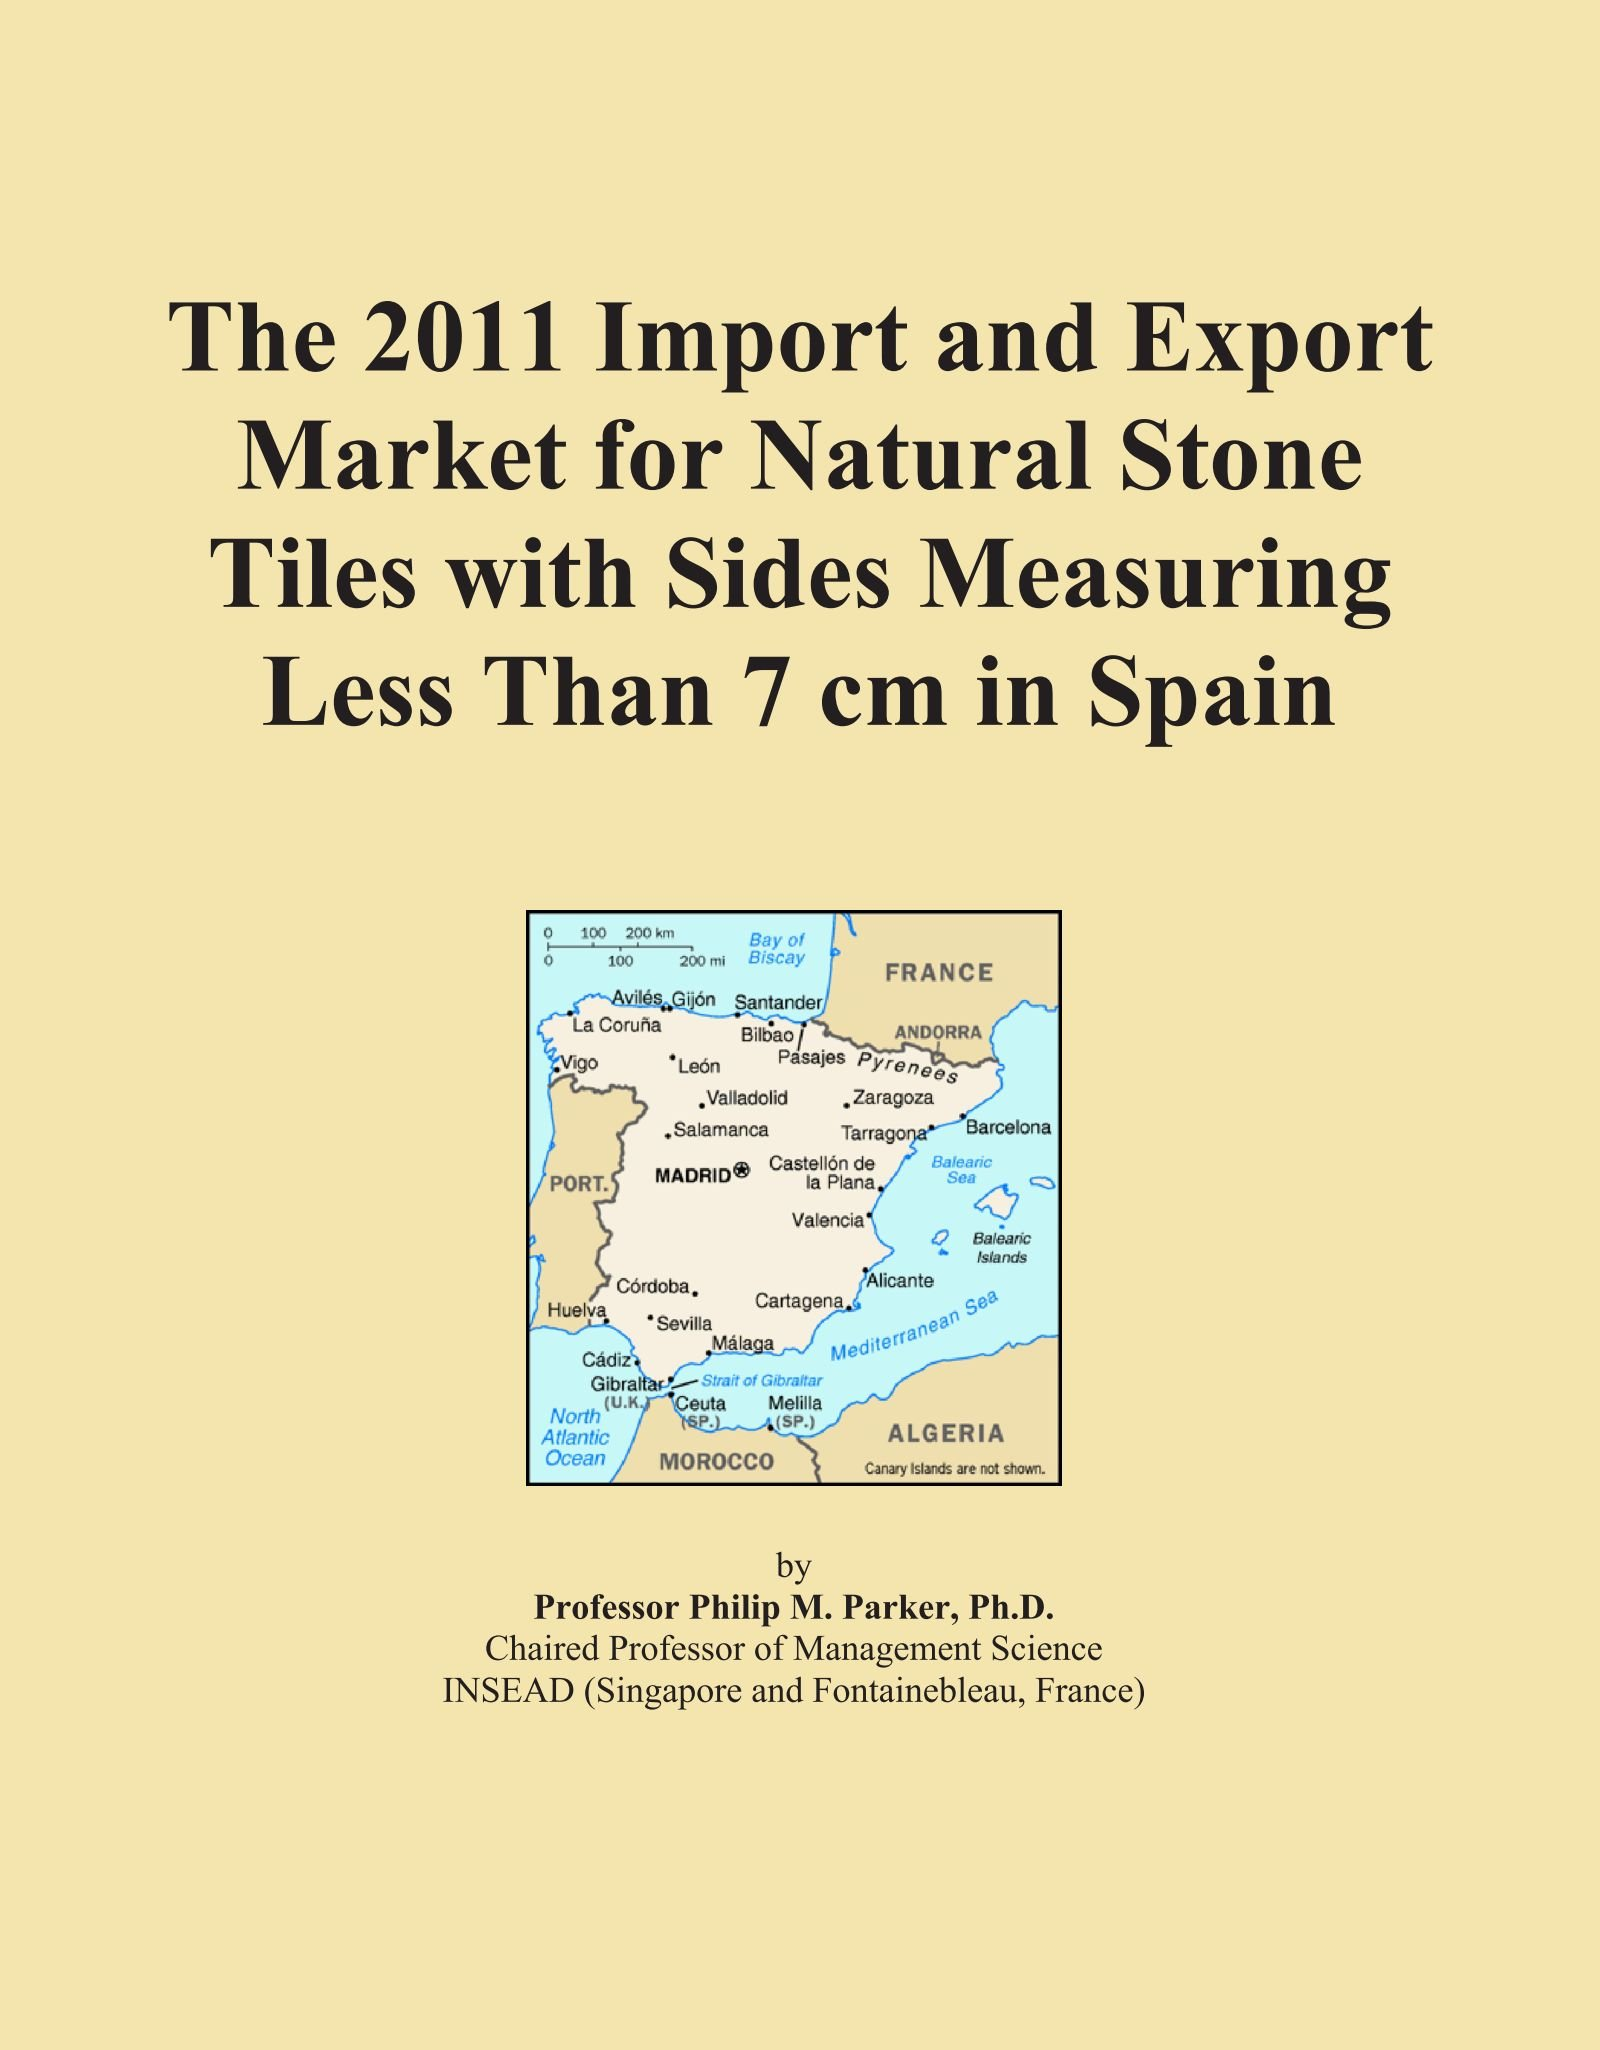 The 2011 Import and Export Market for Natural Stone Tiles with Sides Measuring Less Than 7 cm in Spain PDF